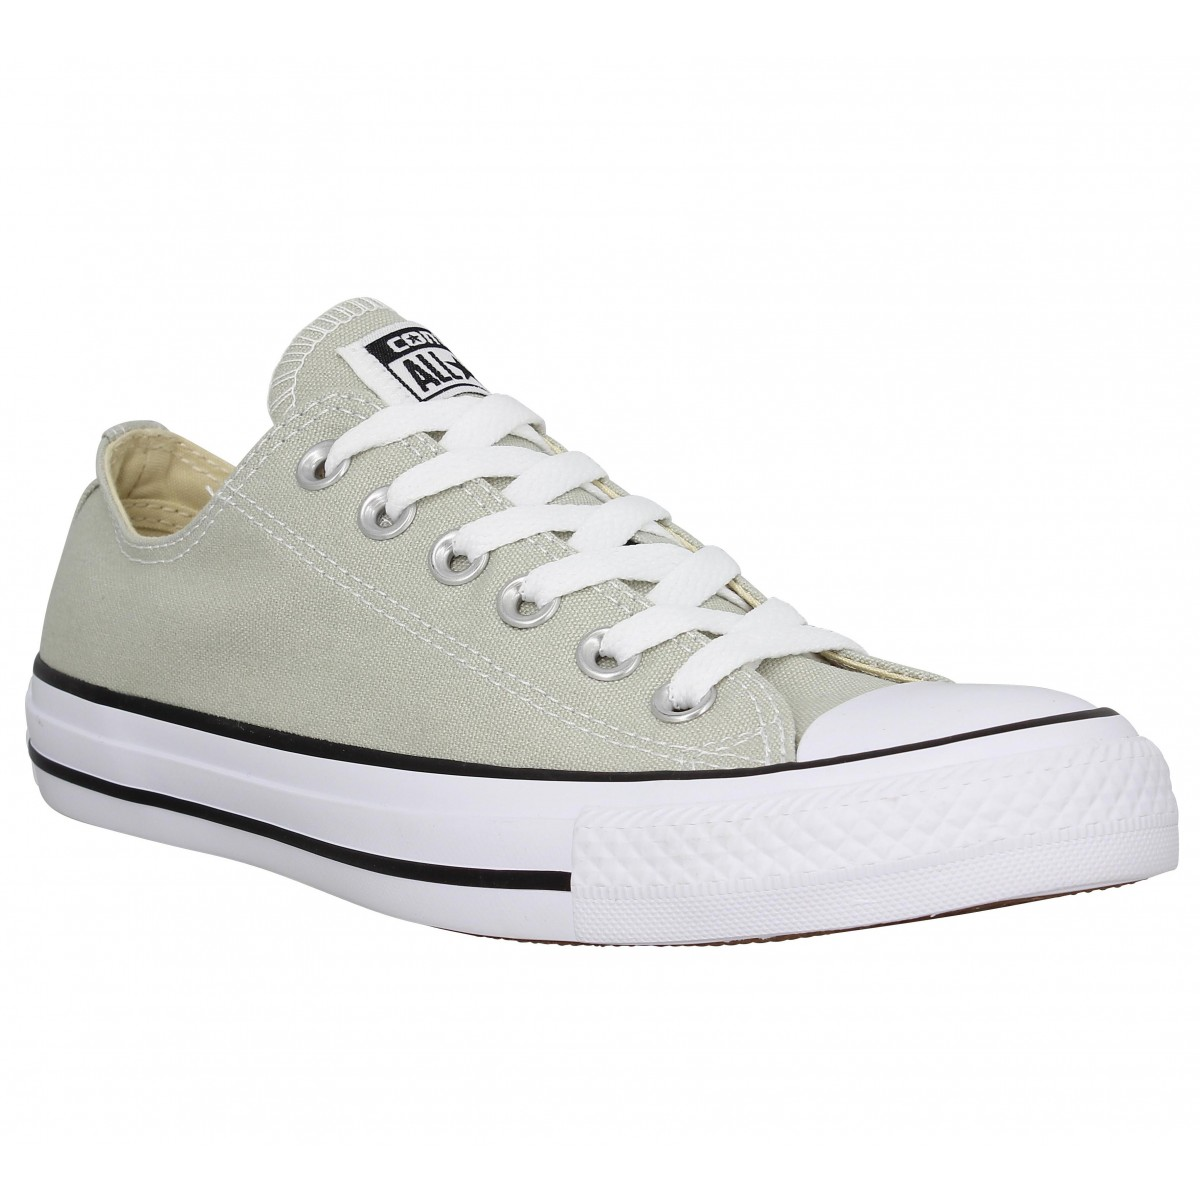 Baskets CONVERSE Chuck Taylor All Star toile Homme Light Surplus